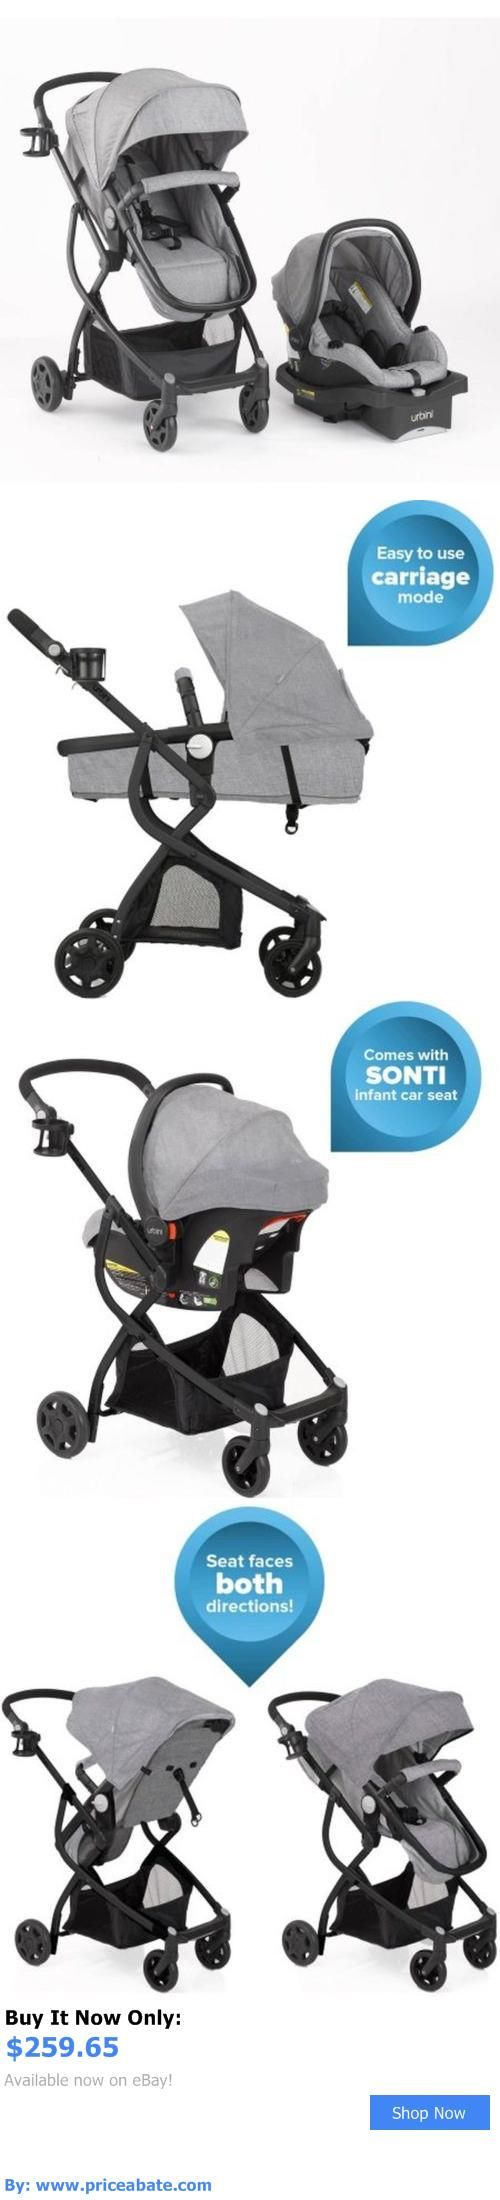 baby And kid stuff: 3 In1 Baby Stroller Car Seat Travel System Infant Carriage Buggy Bassinet New BUY IT NOW ONLY: $259.65 #priceabatebabykidstuff OR #priceabate